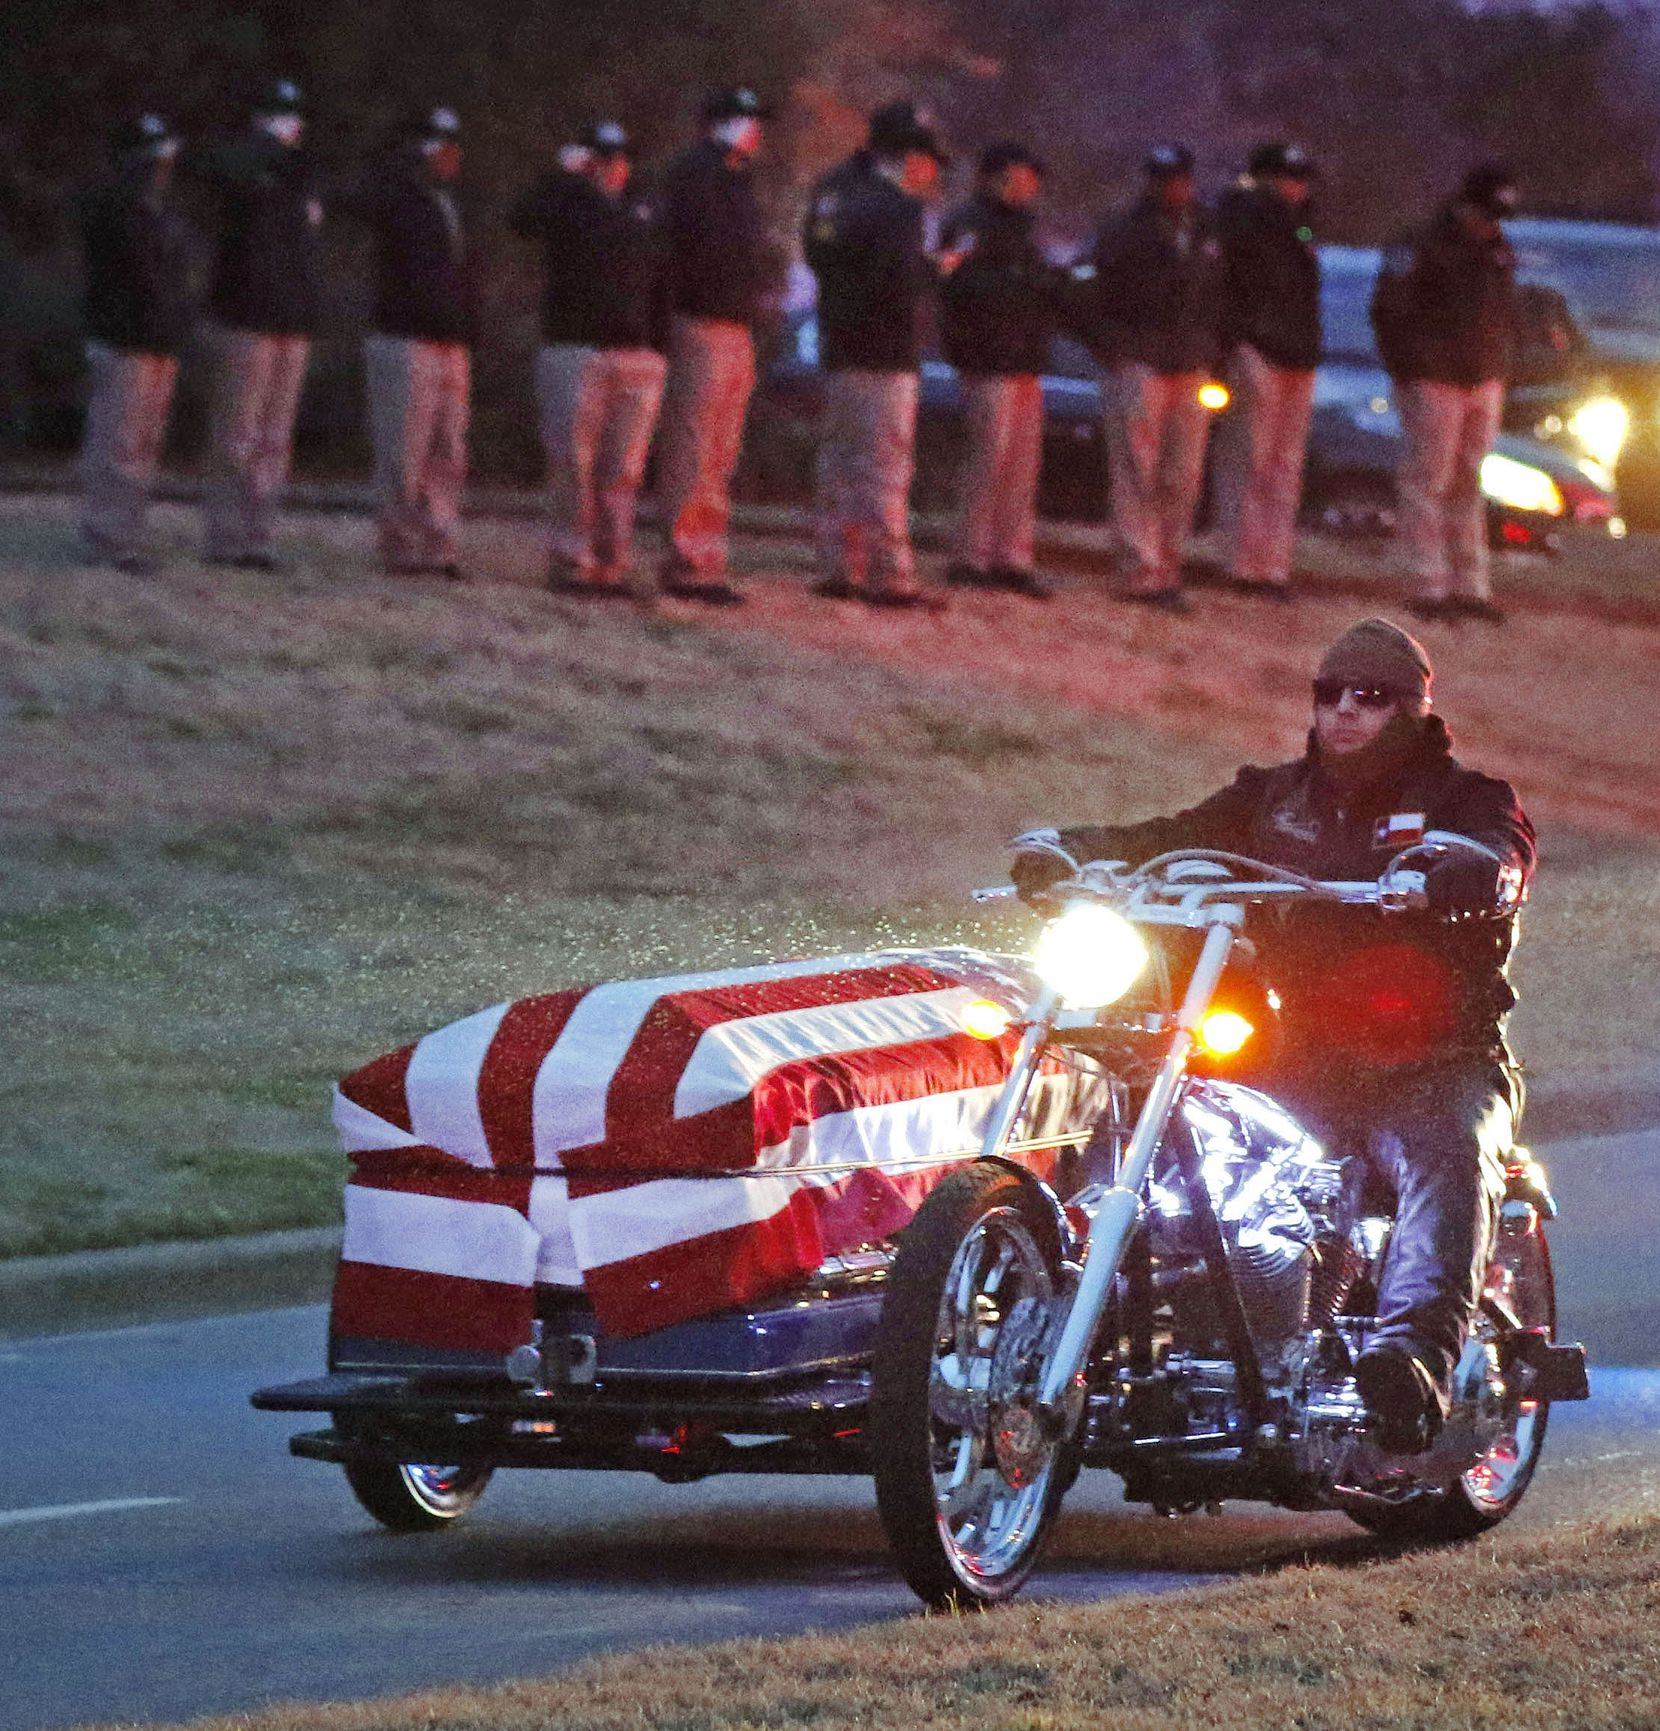 Officers solemnly salute as a motorcycle carries the body of Richardson police officer David Sherrard in a flag-draped casket en route from a church service to his burial, in Dallas, Texas, Tuesday, February 13, 2018. Sherrard was fatally shot a week before.